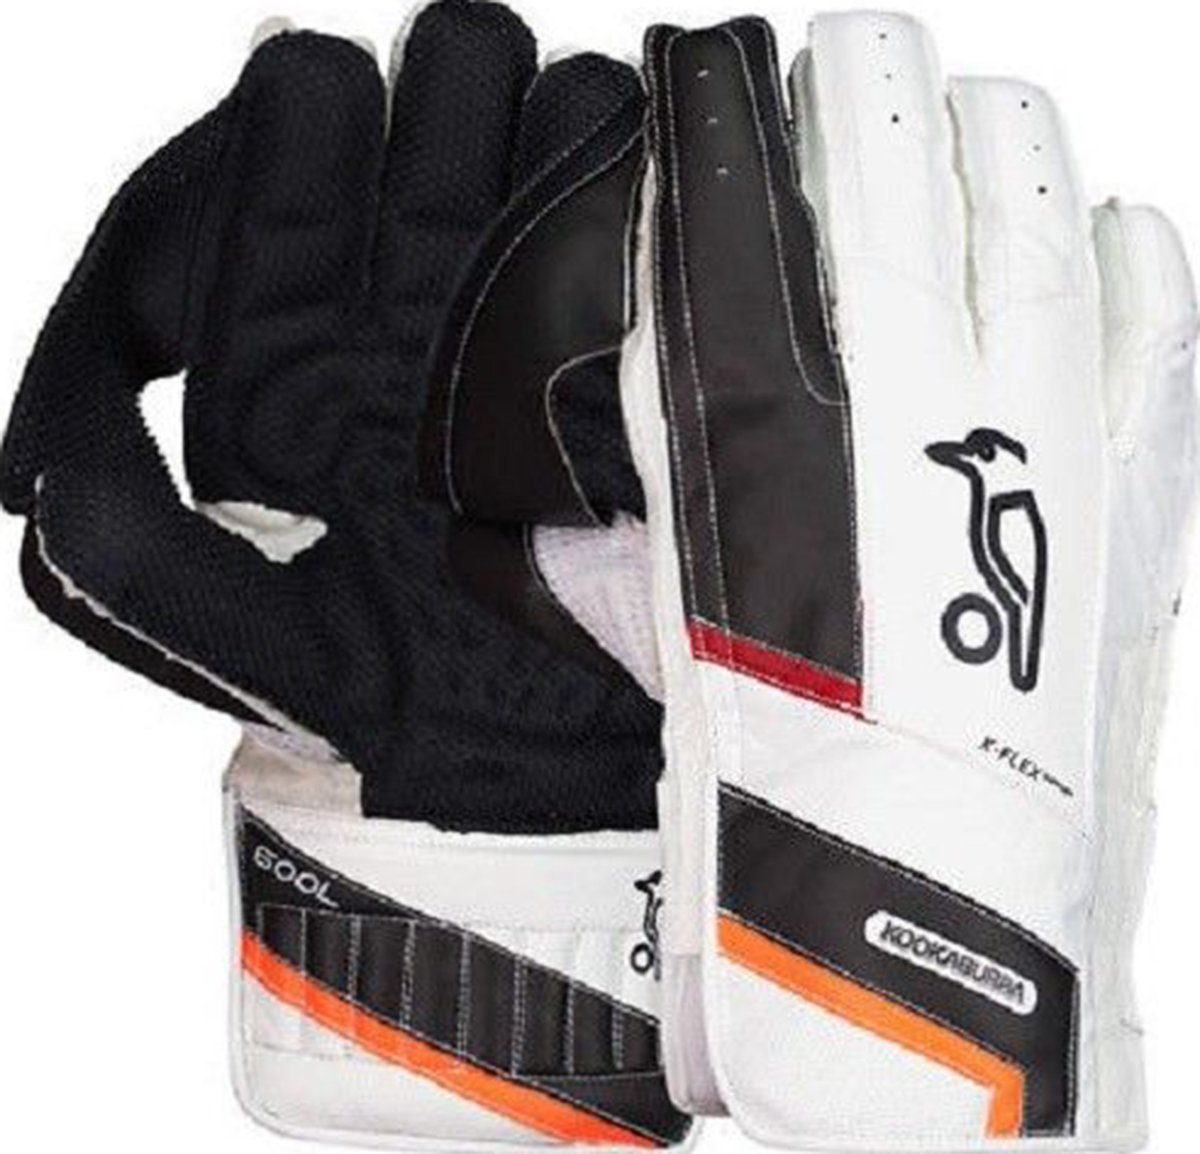 2018 Kookaburra 600L Long Cut Wicket Keeping Gloves NEW Only Cricket